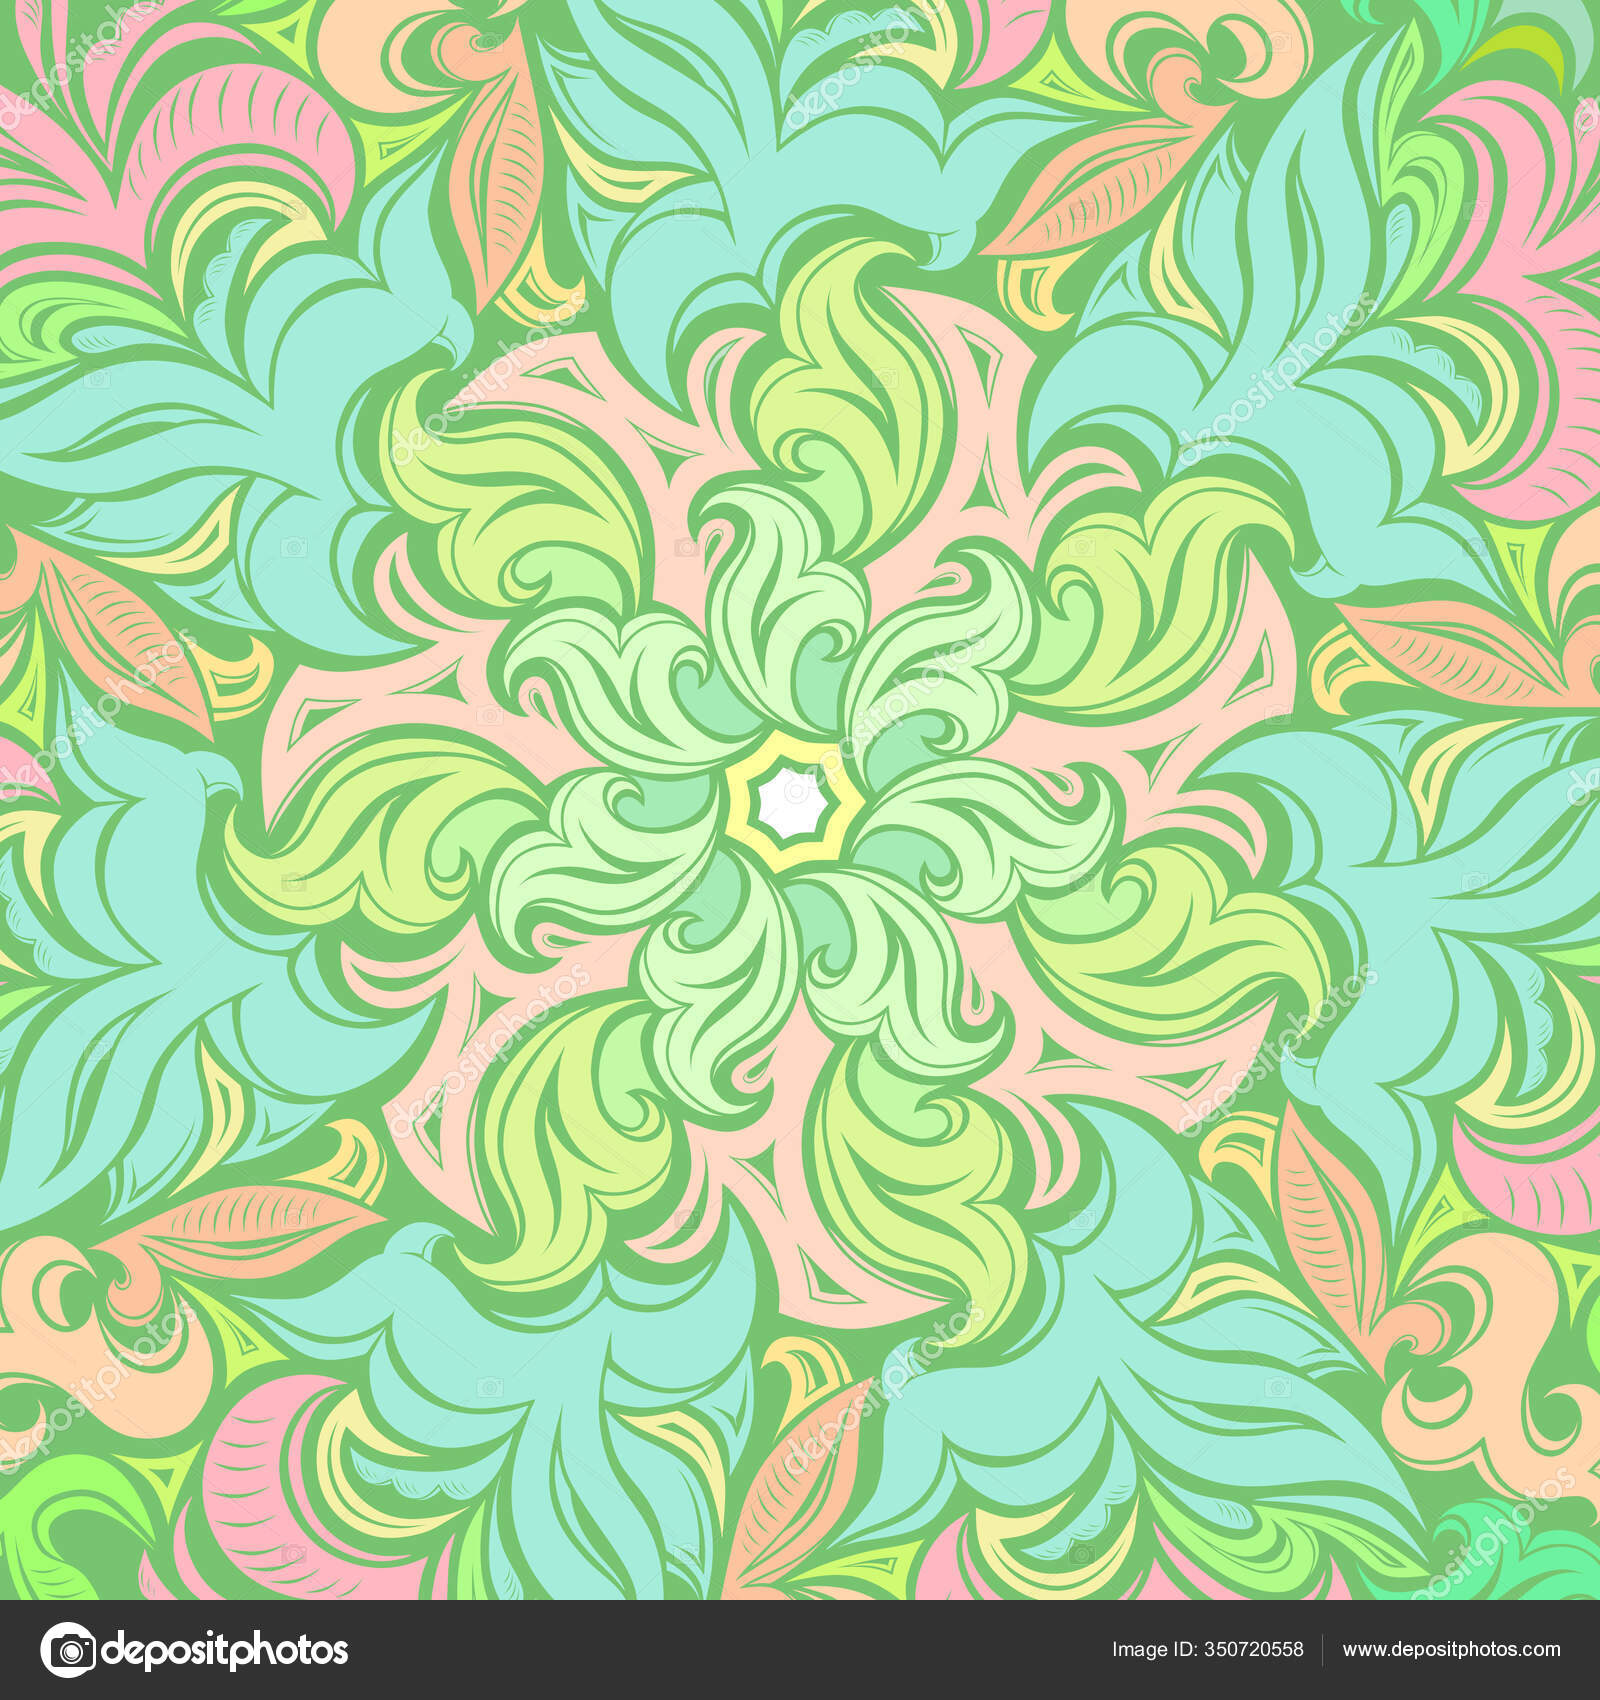 Vintage Decorative Background Soft Green Spring Mandala Plant Decorative Floral Vector Image By C Xennya Vector Stock 350720558